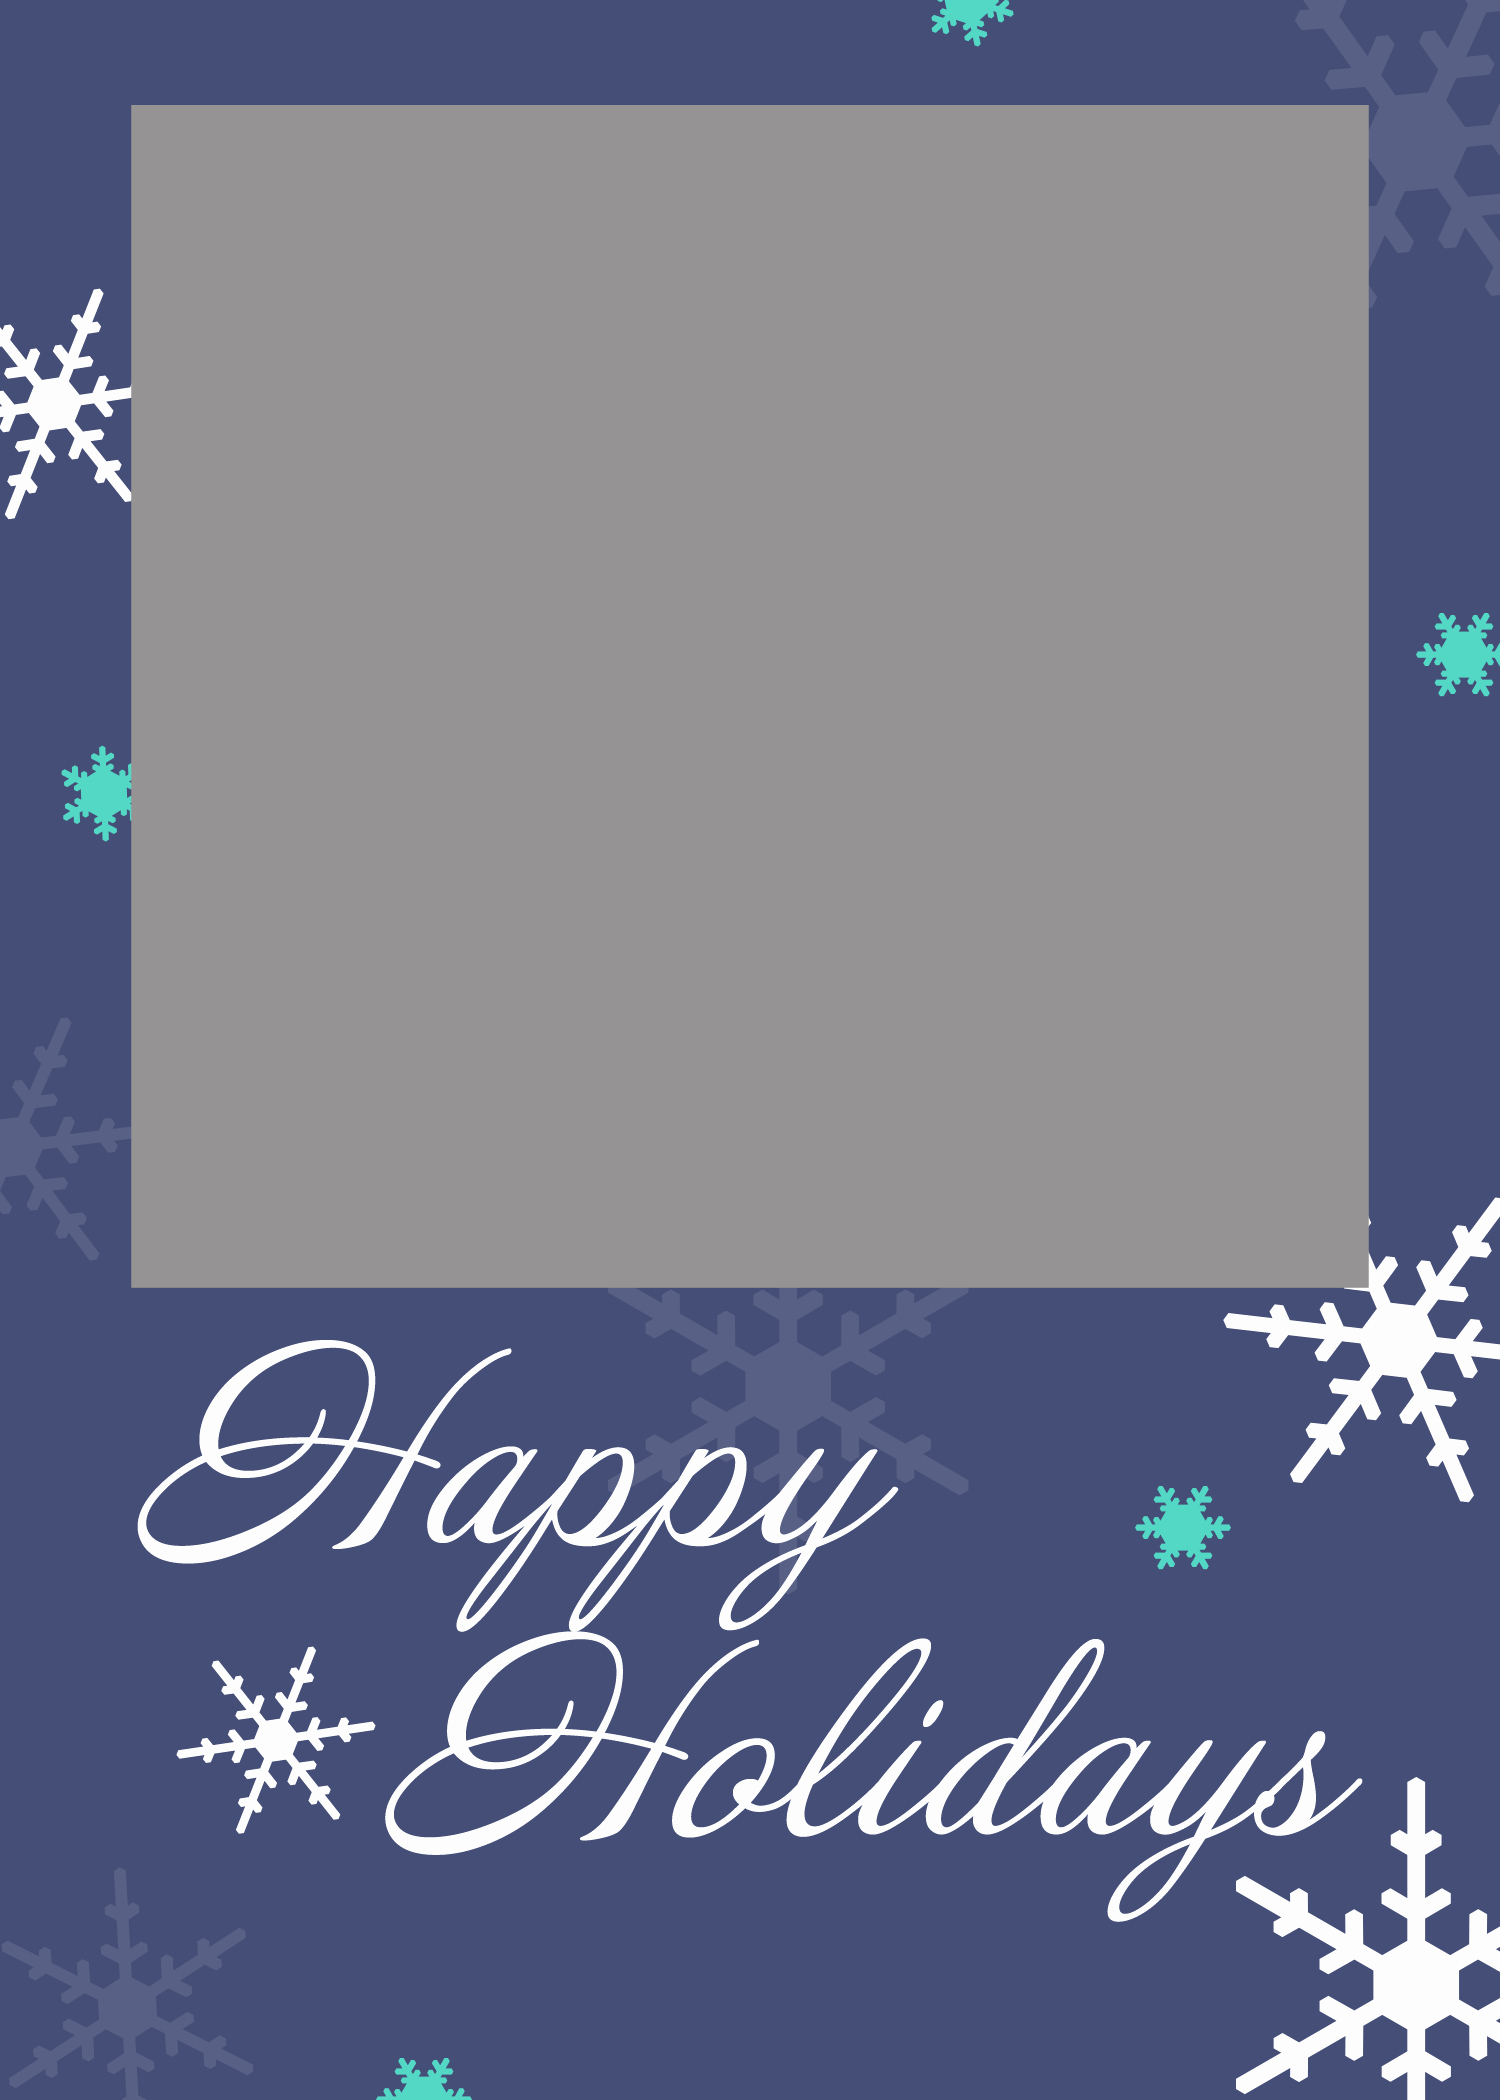 Free Photo Christmas Card Templates Awesome Free Printable Holiday Card Plus Pixlr Video